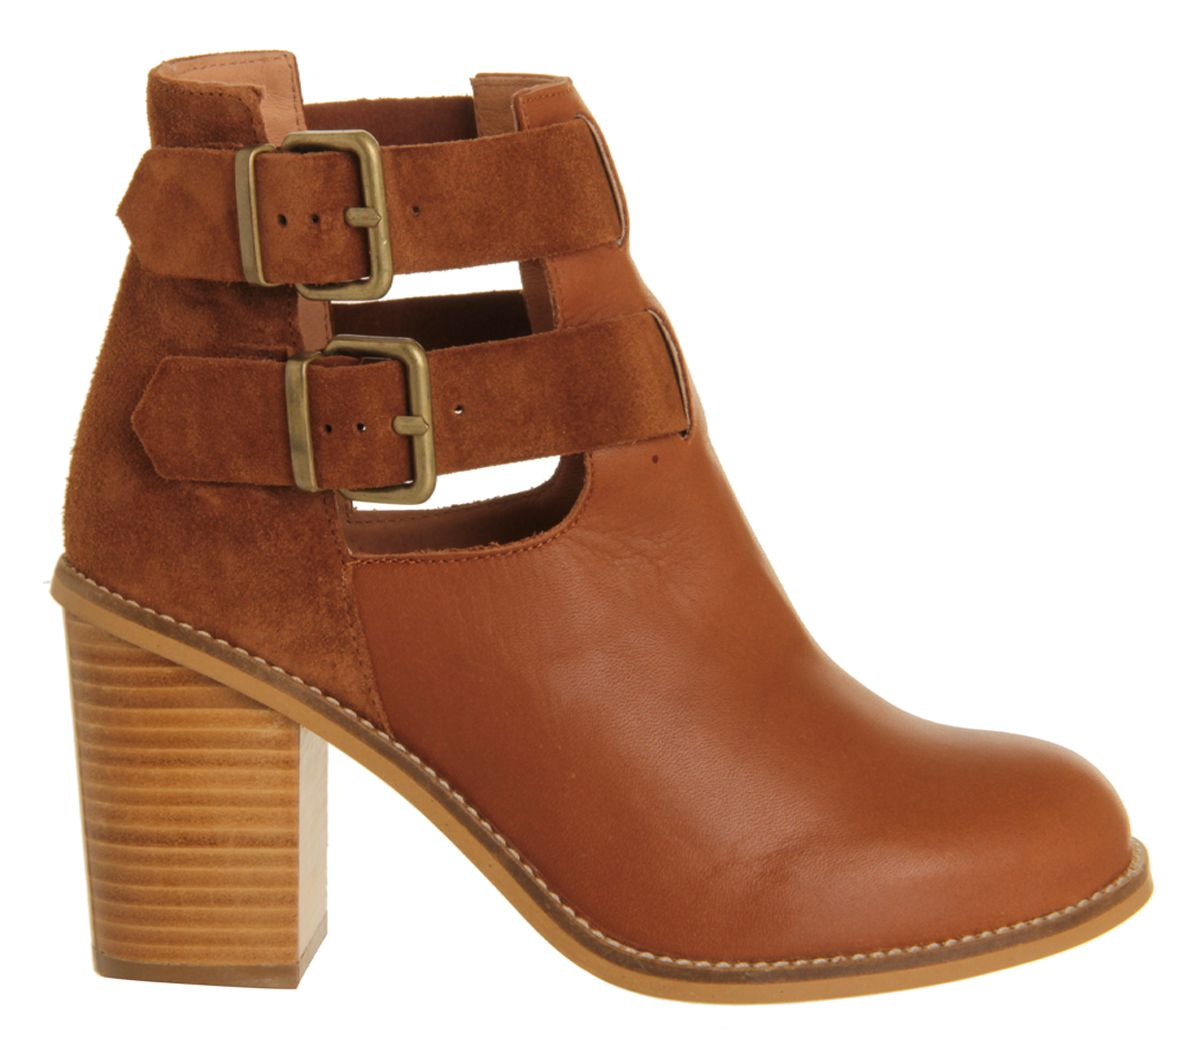 Office Cash Cut Out Buckle Boot Tan Nubuck Ankle Boots